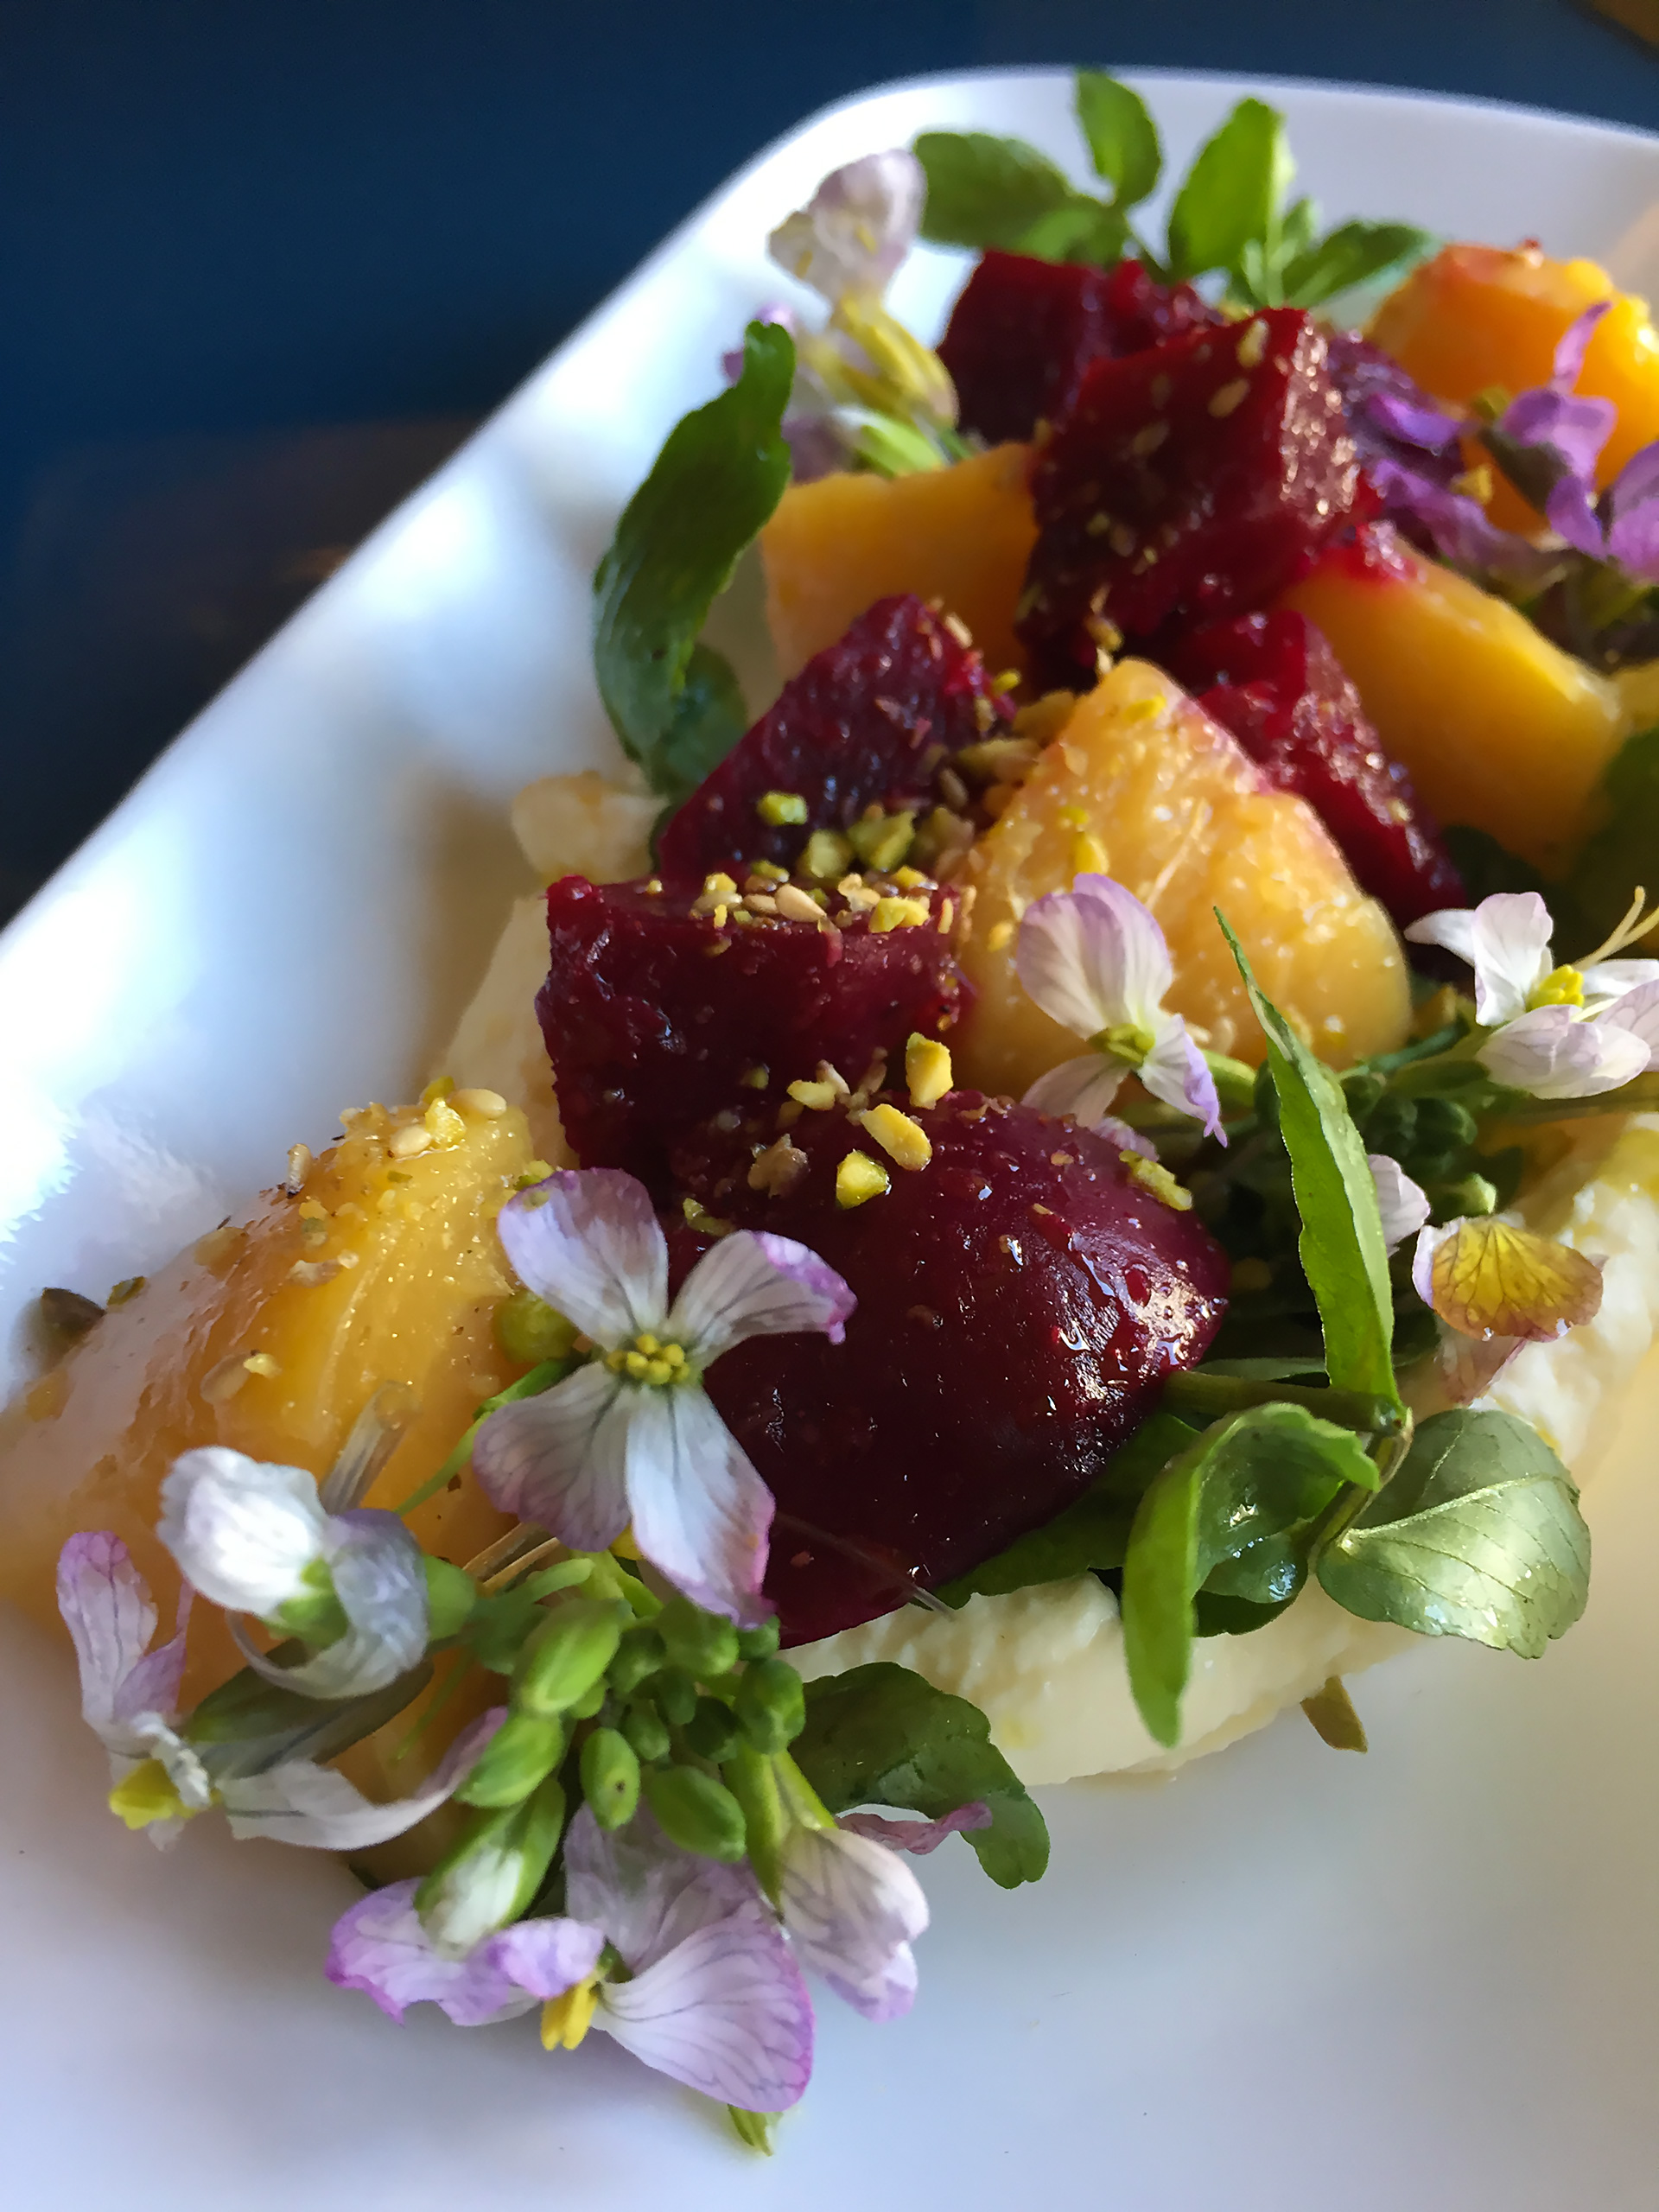 Roasted Beets with Pistachio Dukkha and Bellwether Farms Ricotta